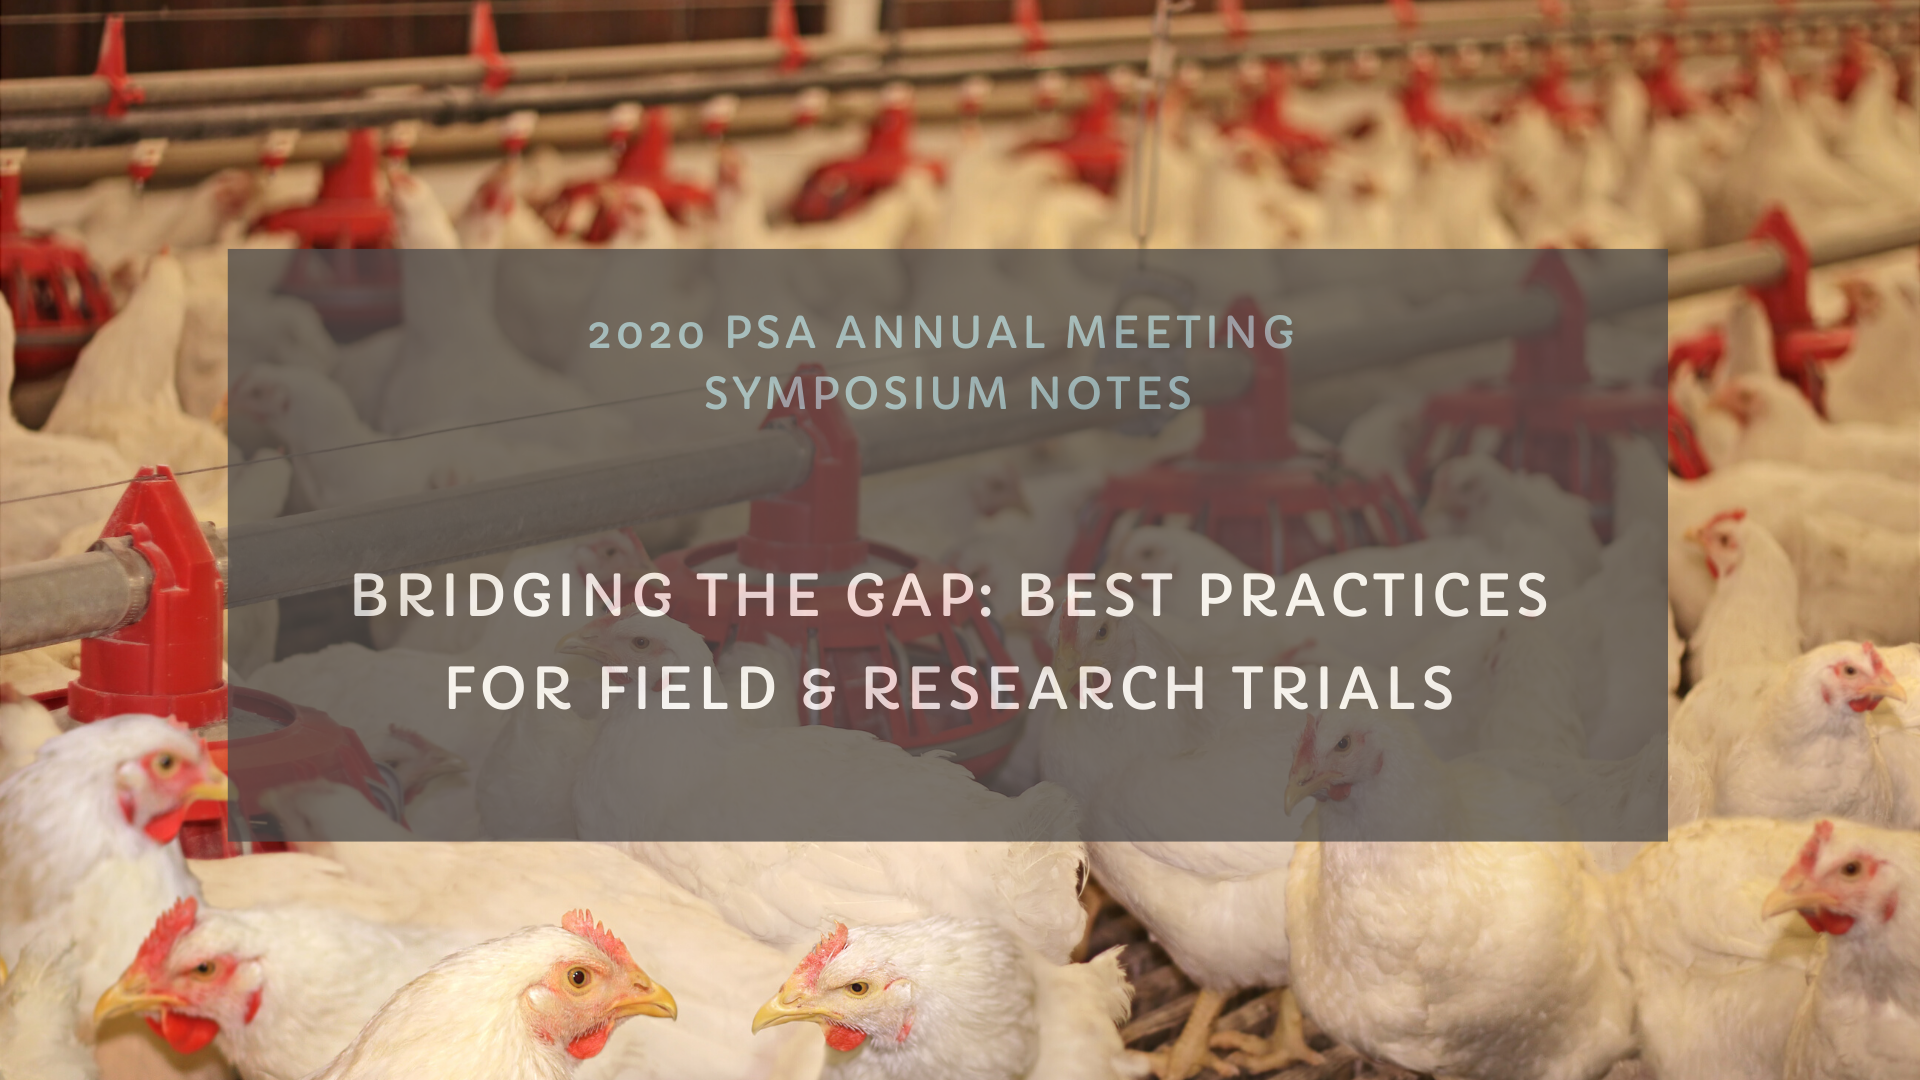 Bridging the Gap: Best Practices for Field & Research Trials | PSA 2020 Symposium Notes